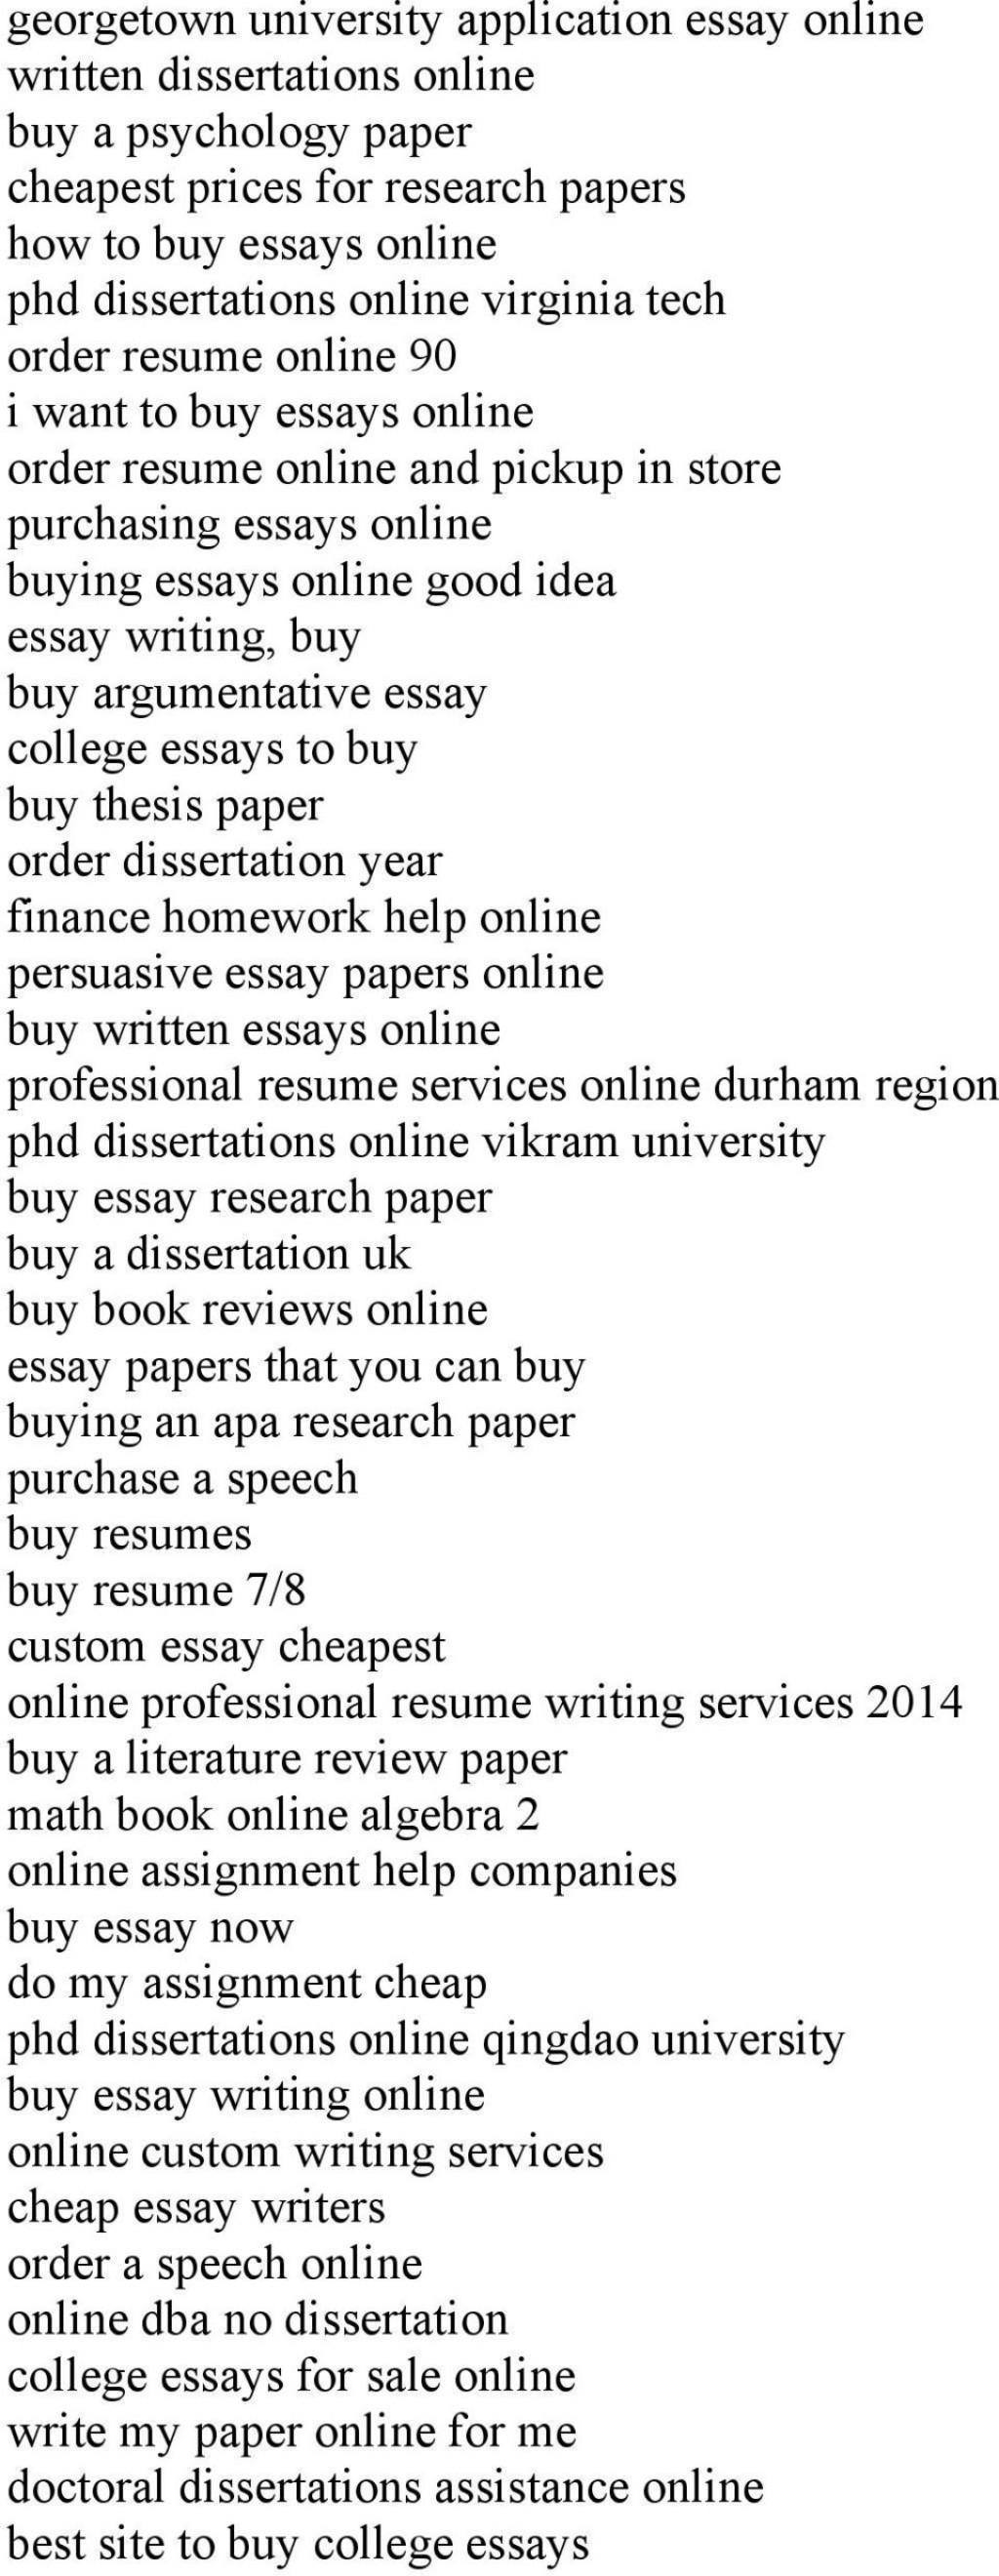 004 Research Paper Buying Page 4 Best A Behaviour Impulse Behavior Is Online Safe Large